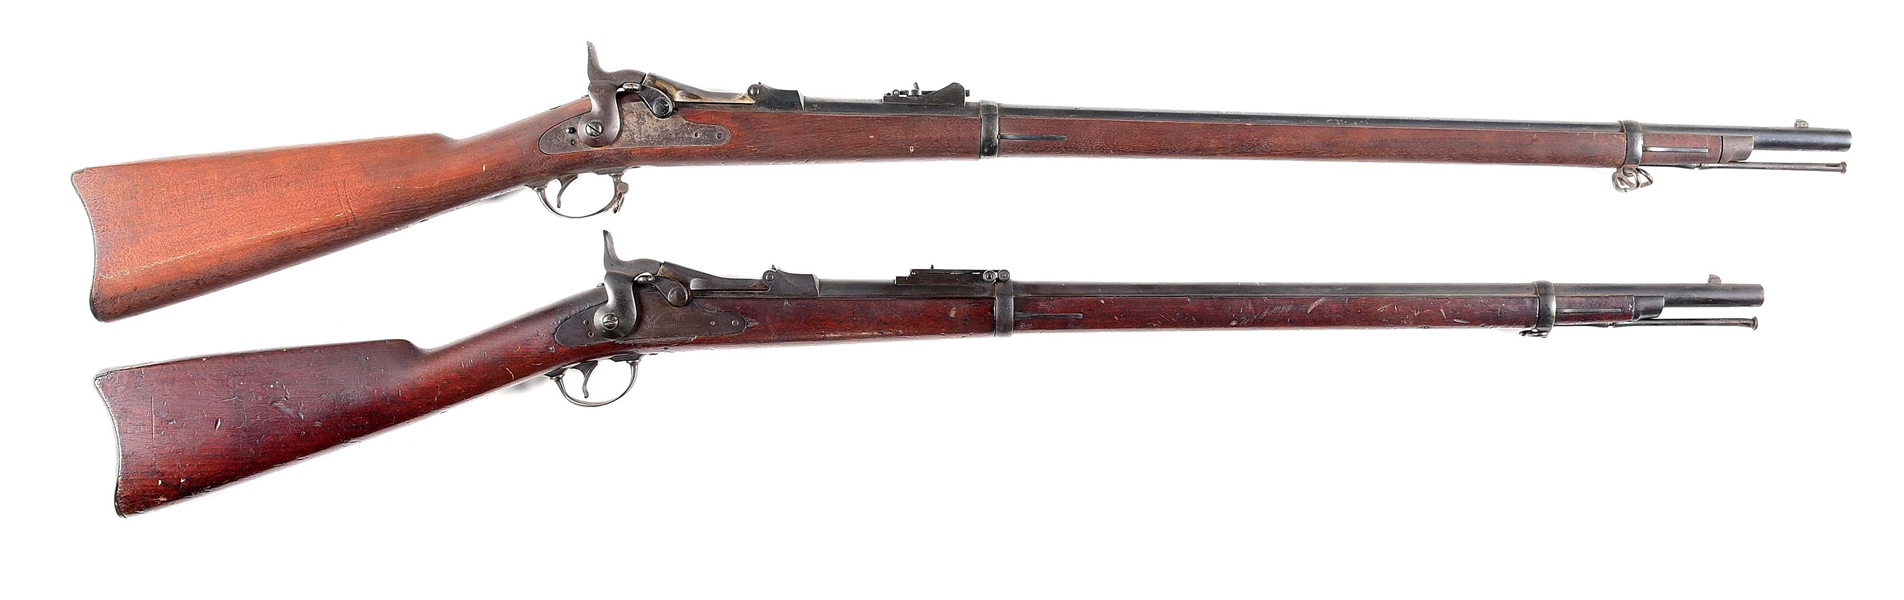 (A) LOT OF 2: SPRINGFIELD 1884 AND 1879 CADET TRAPDOOR SINGLE SHOT RIFLES.